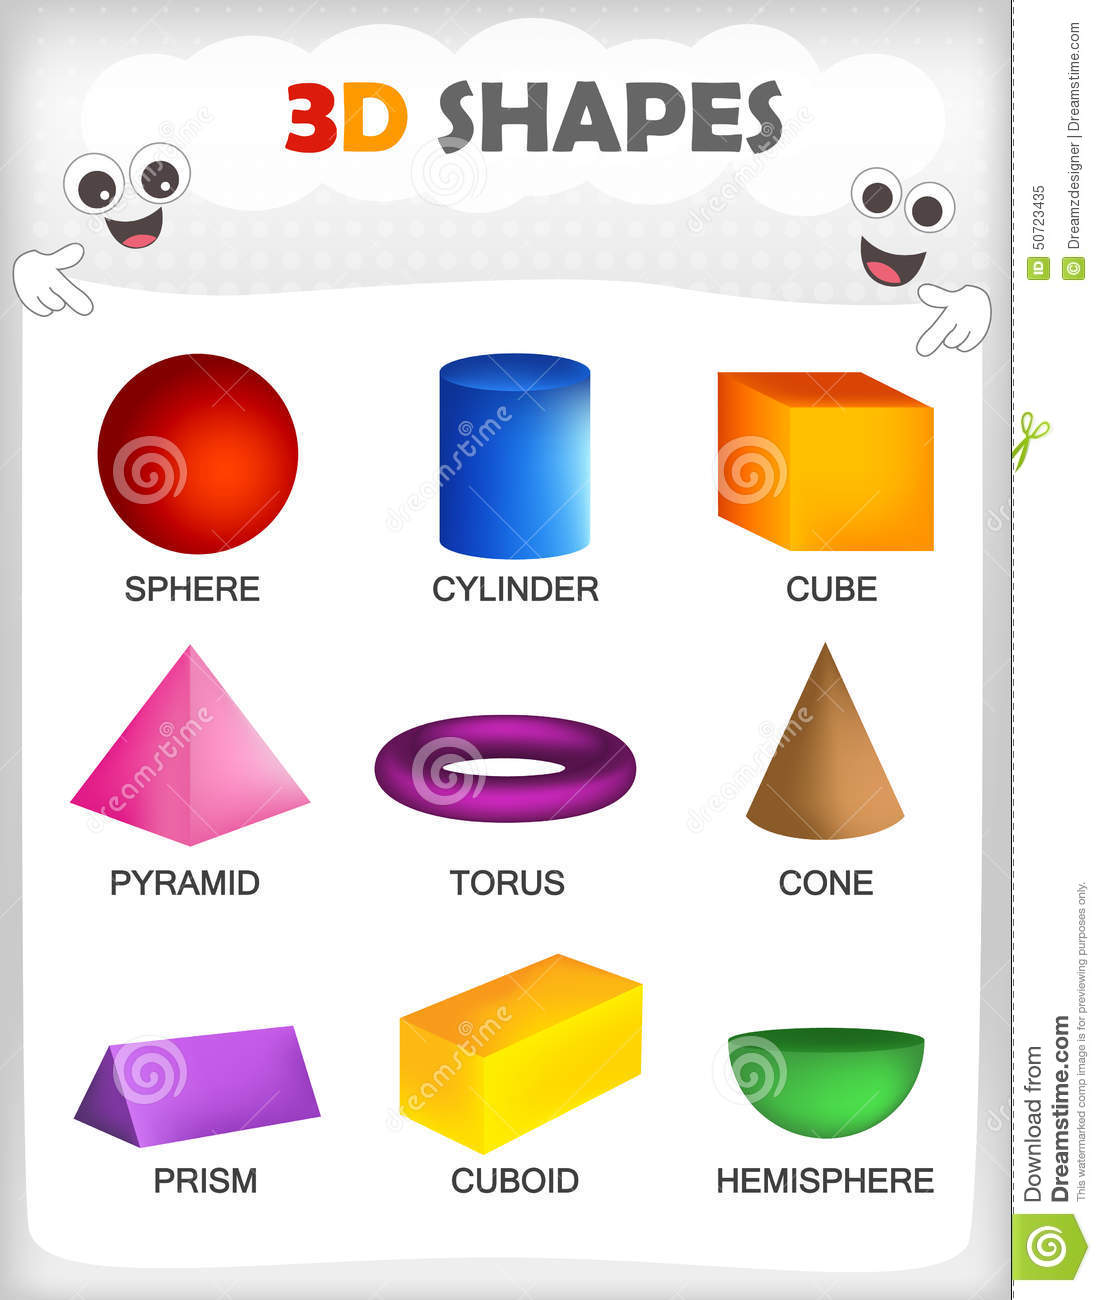 3D Shapes Stock Vector - Image: 50723435